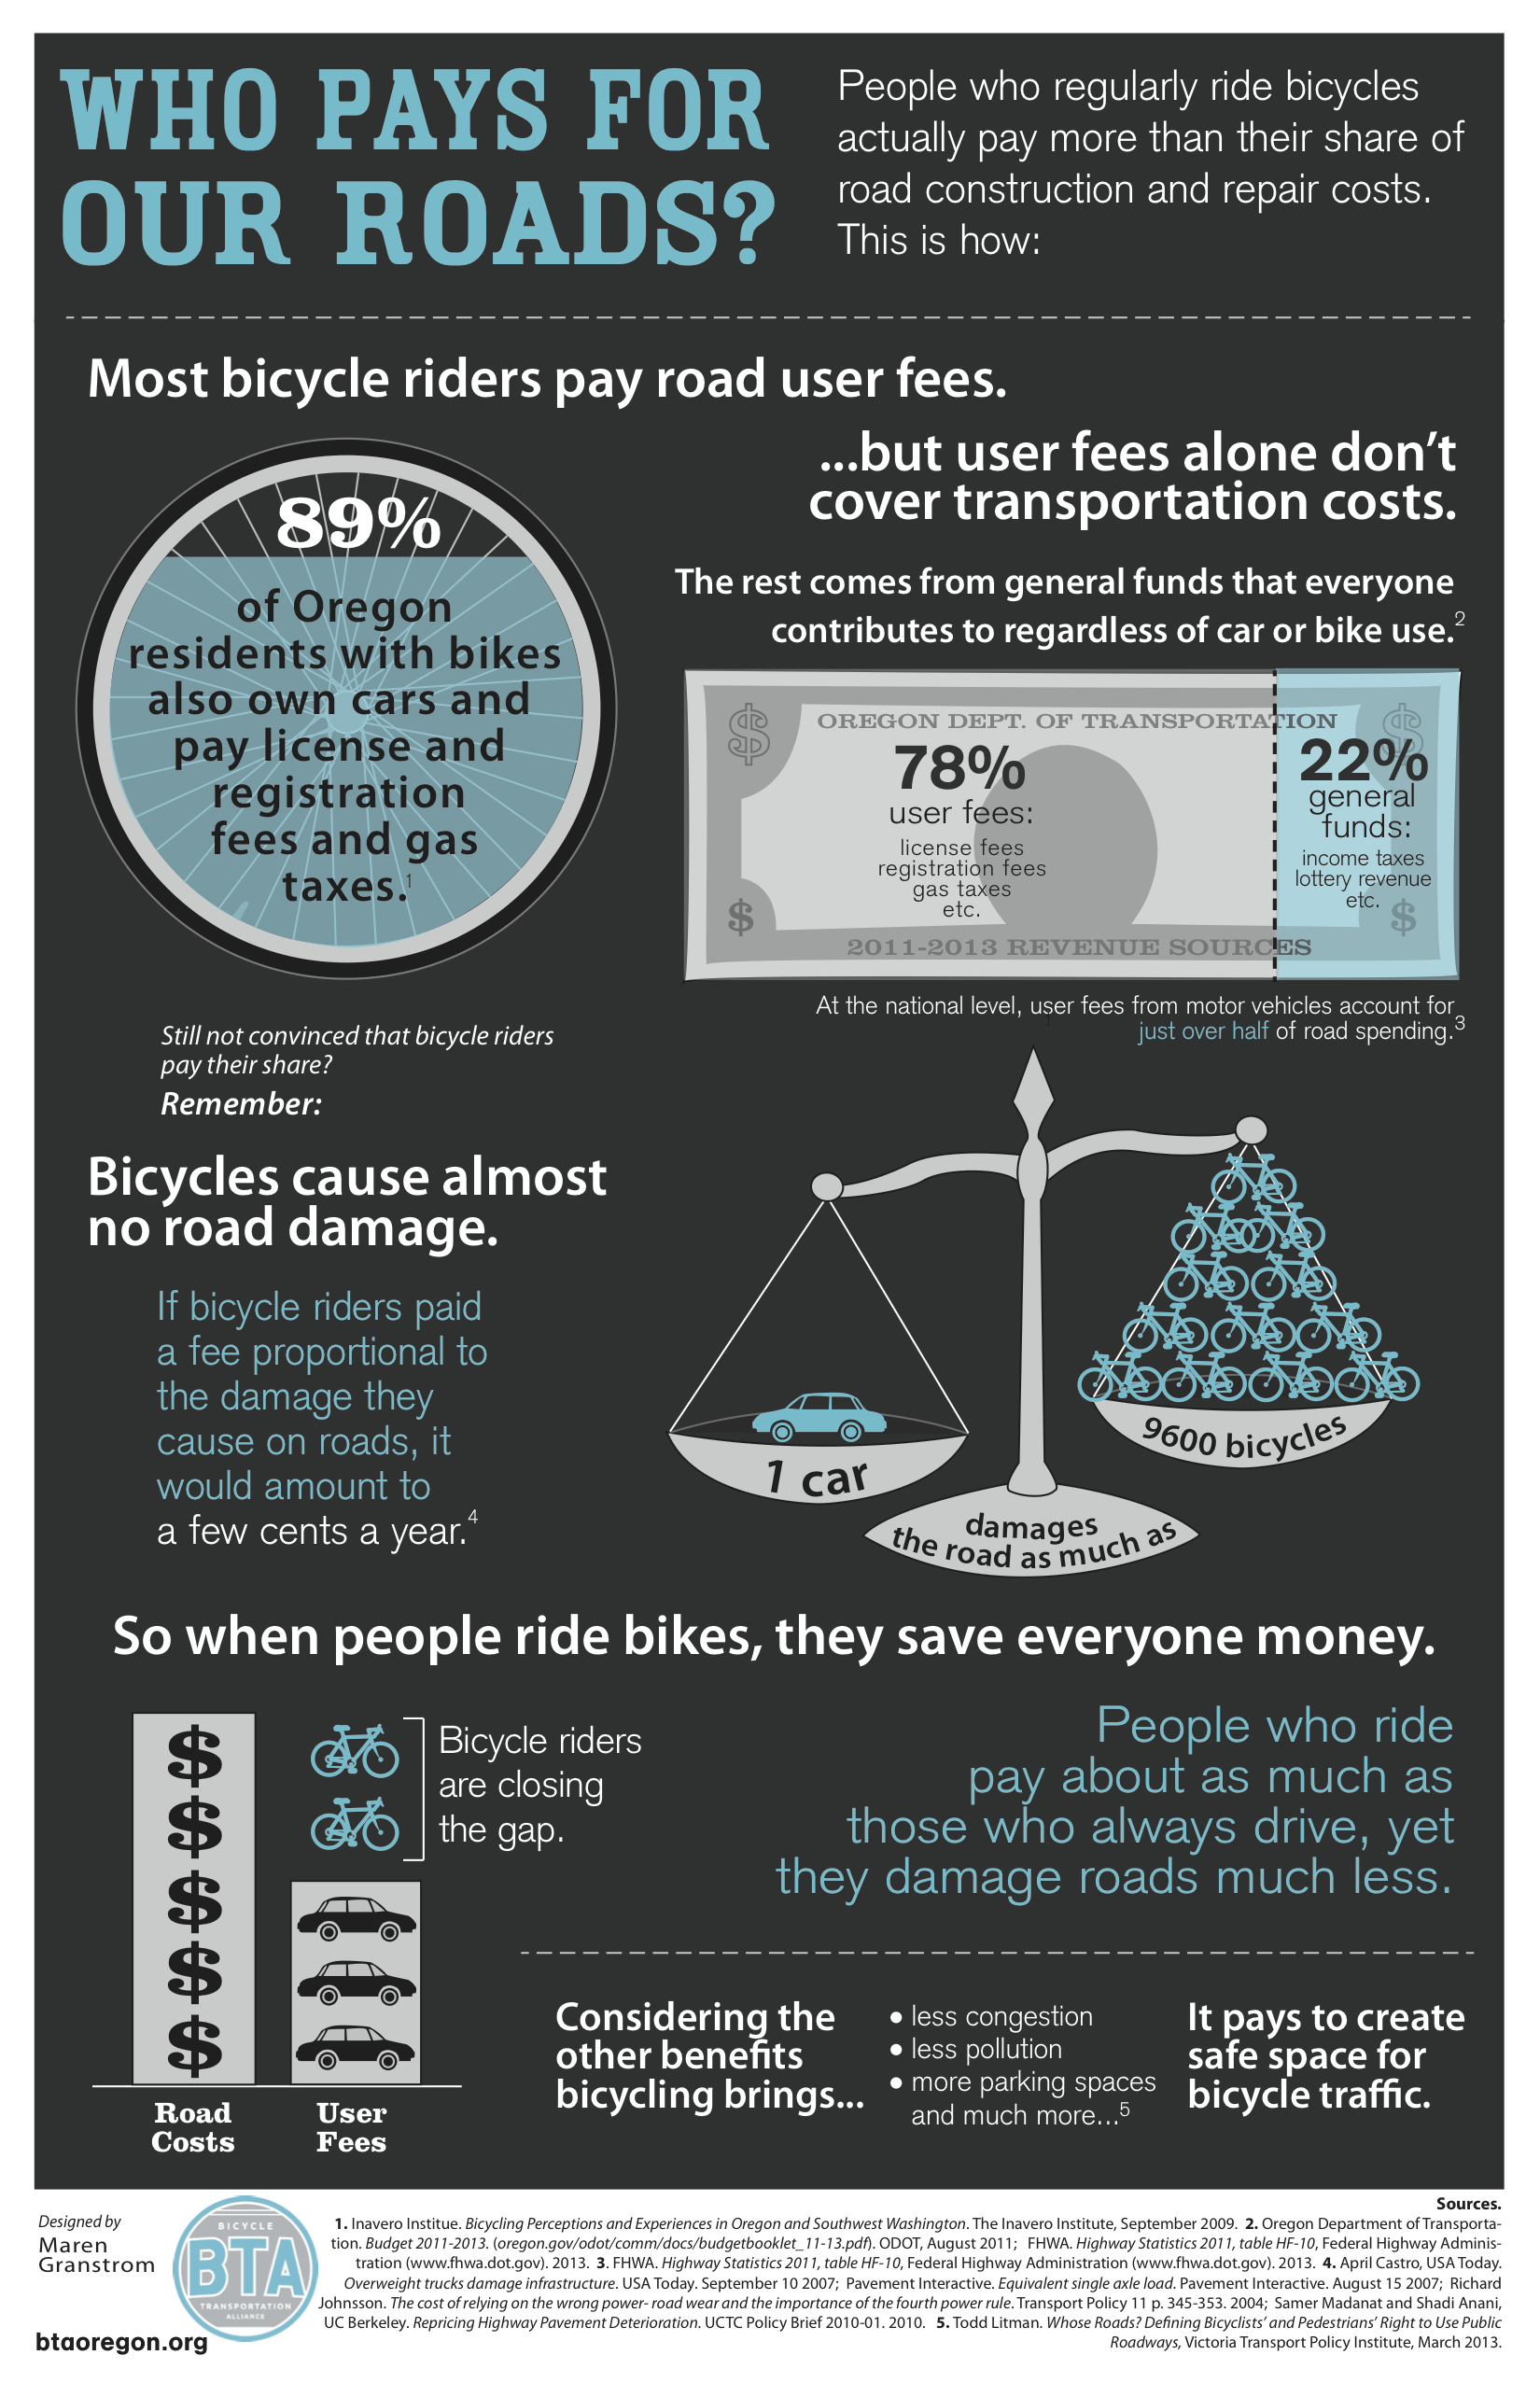 do bikes get a free ride advocates 39 infographic shows why not updated. Black Bedroom Furniture Sets. Home Design Ideas